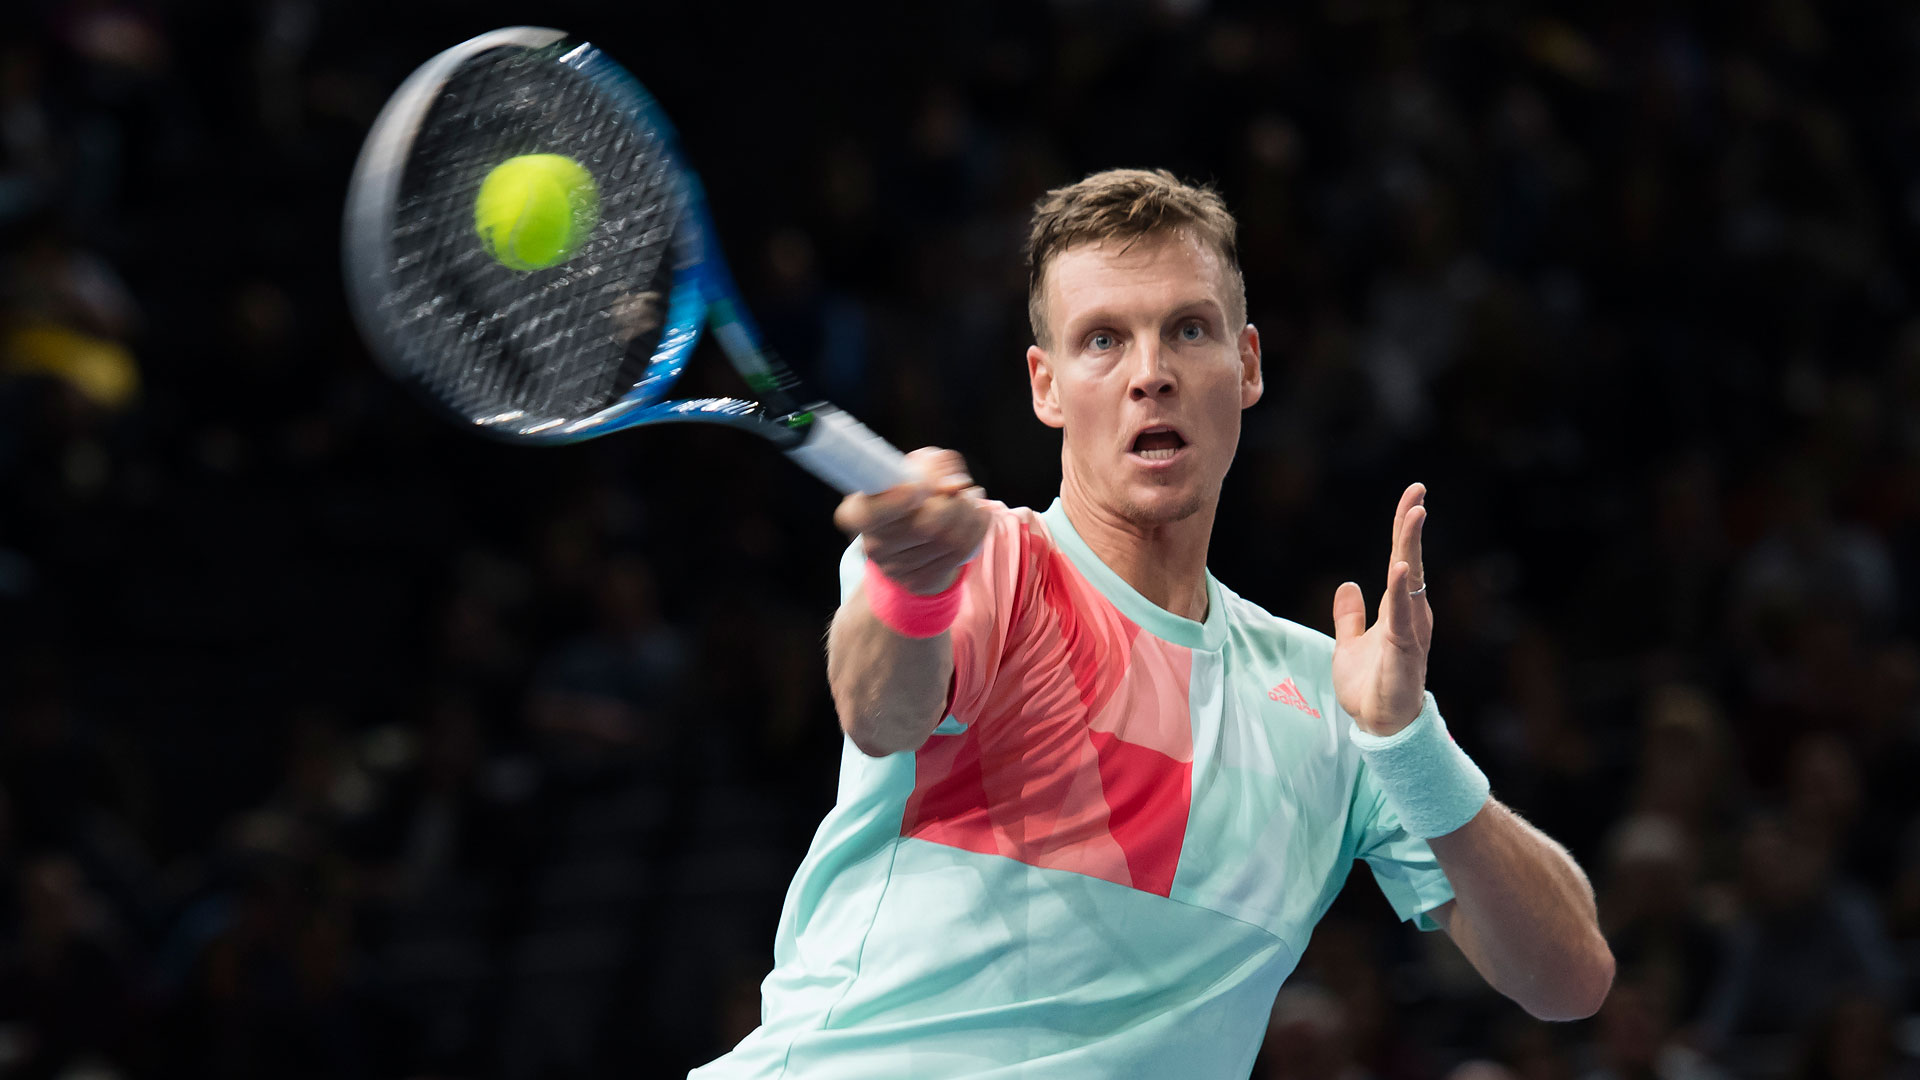 Tomas Berdych keeps his hopes alive for London with a second-round win on Tuesday at the BNP Paribas Masters.